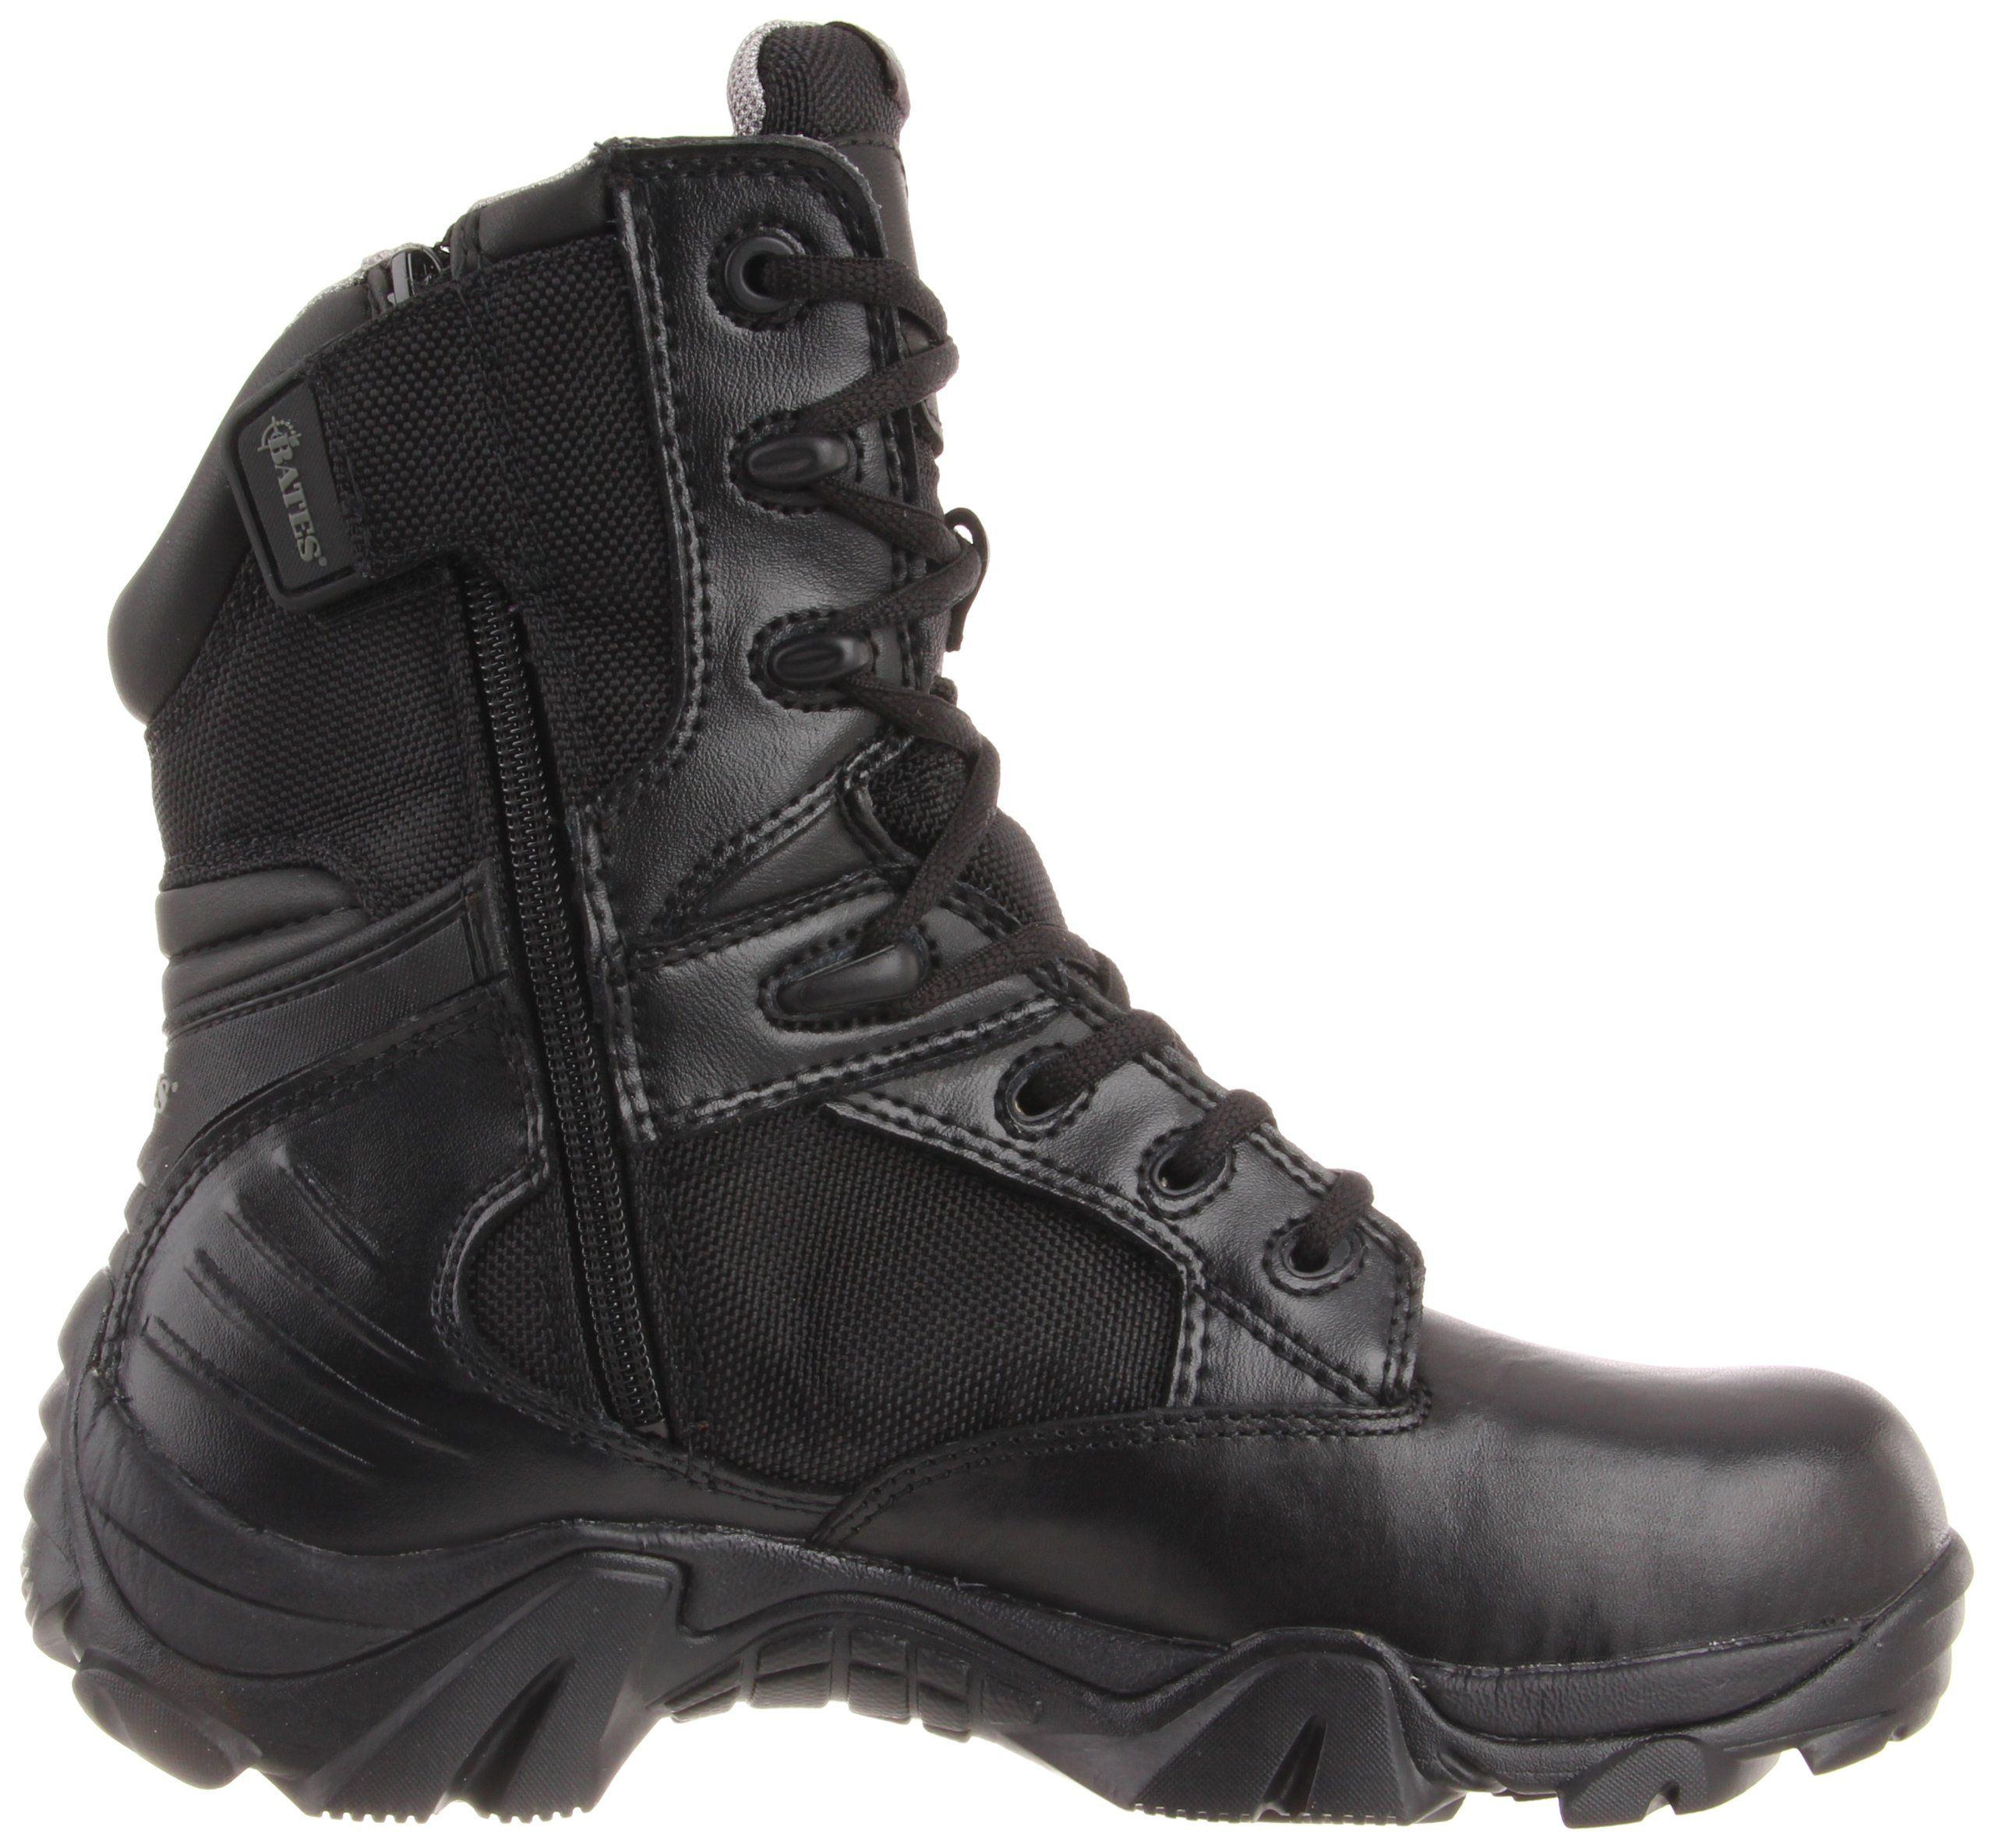 8e25f89372335 Amazon.com: Bates Men's GX-8 8 Inch Ultra-Lites GTX Waterproof Boot ...